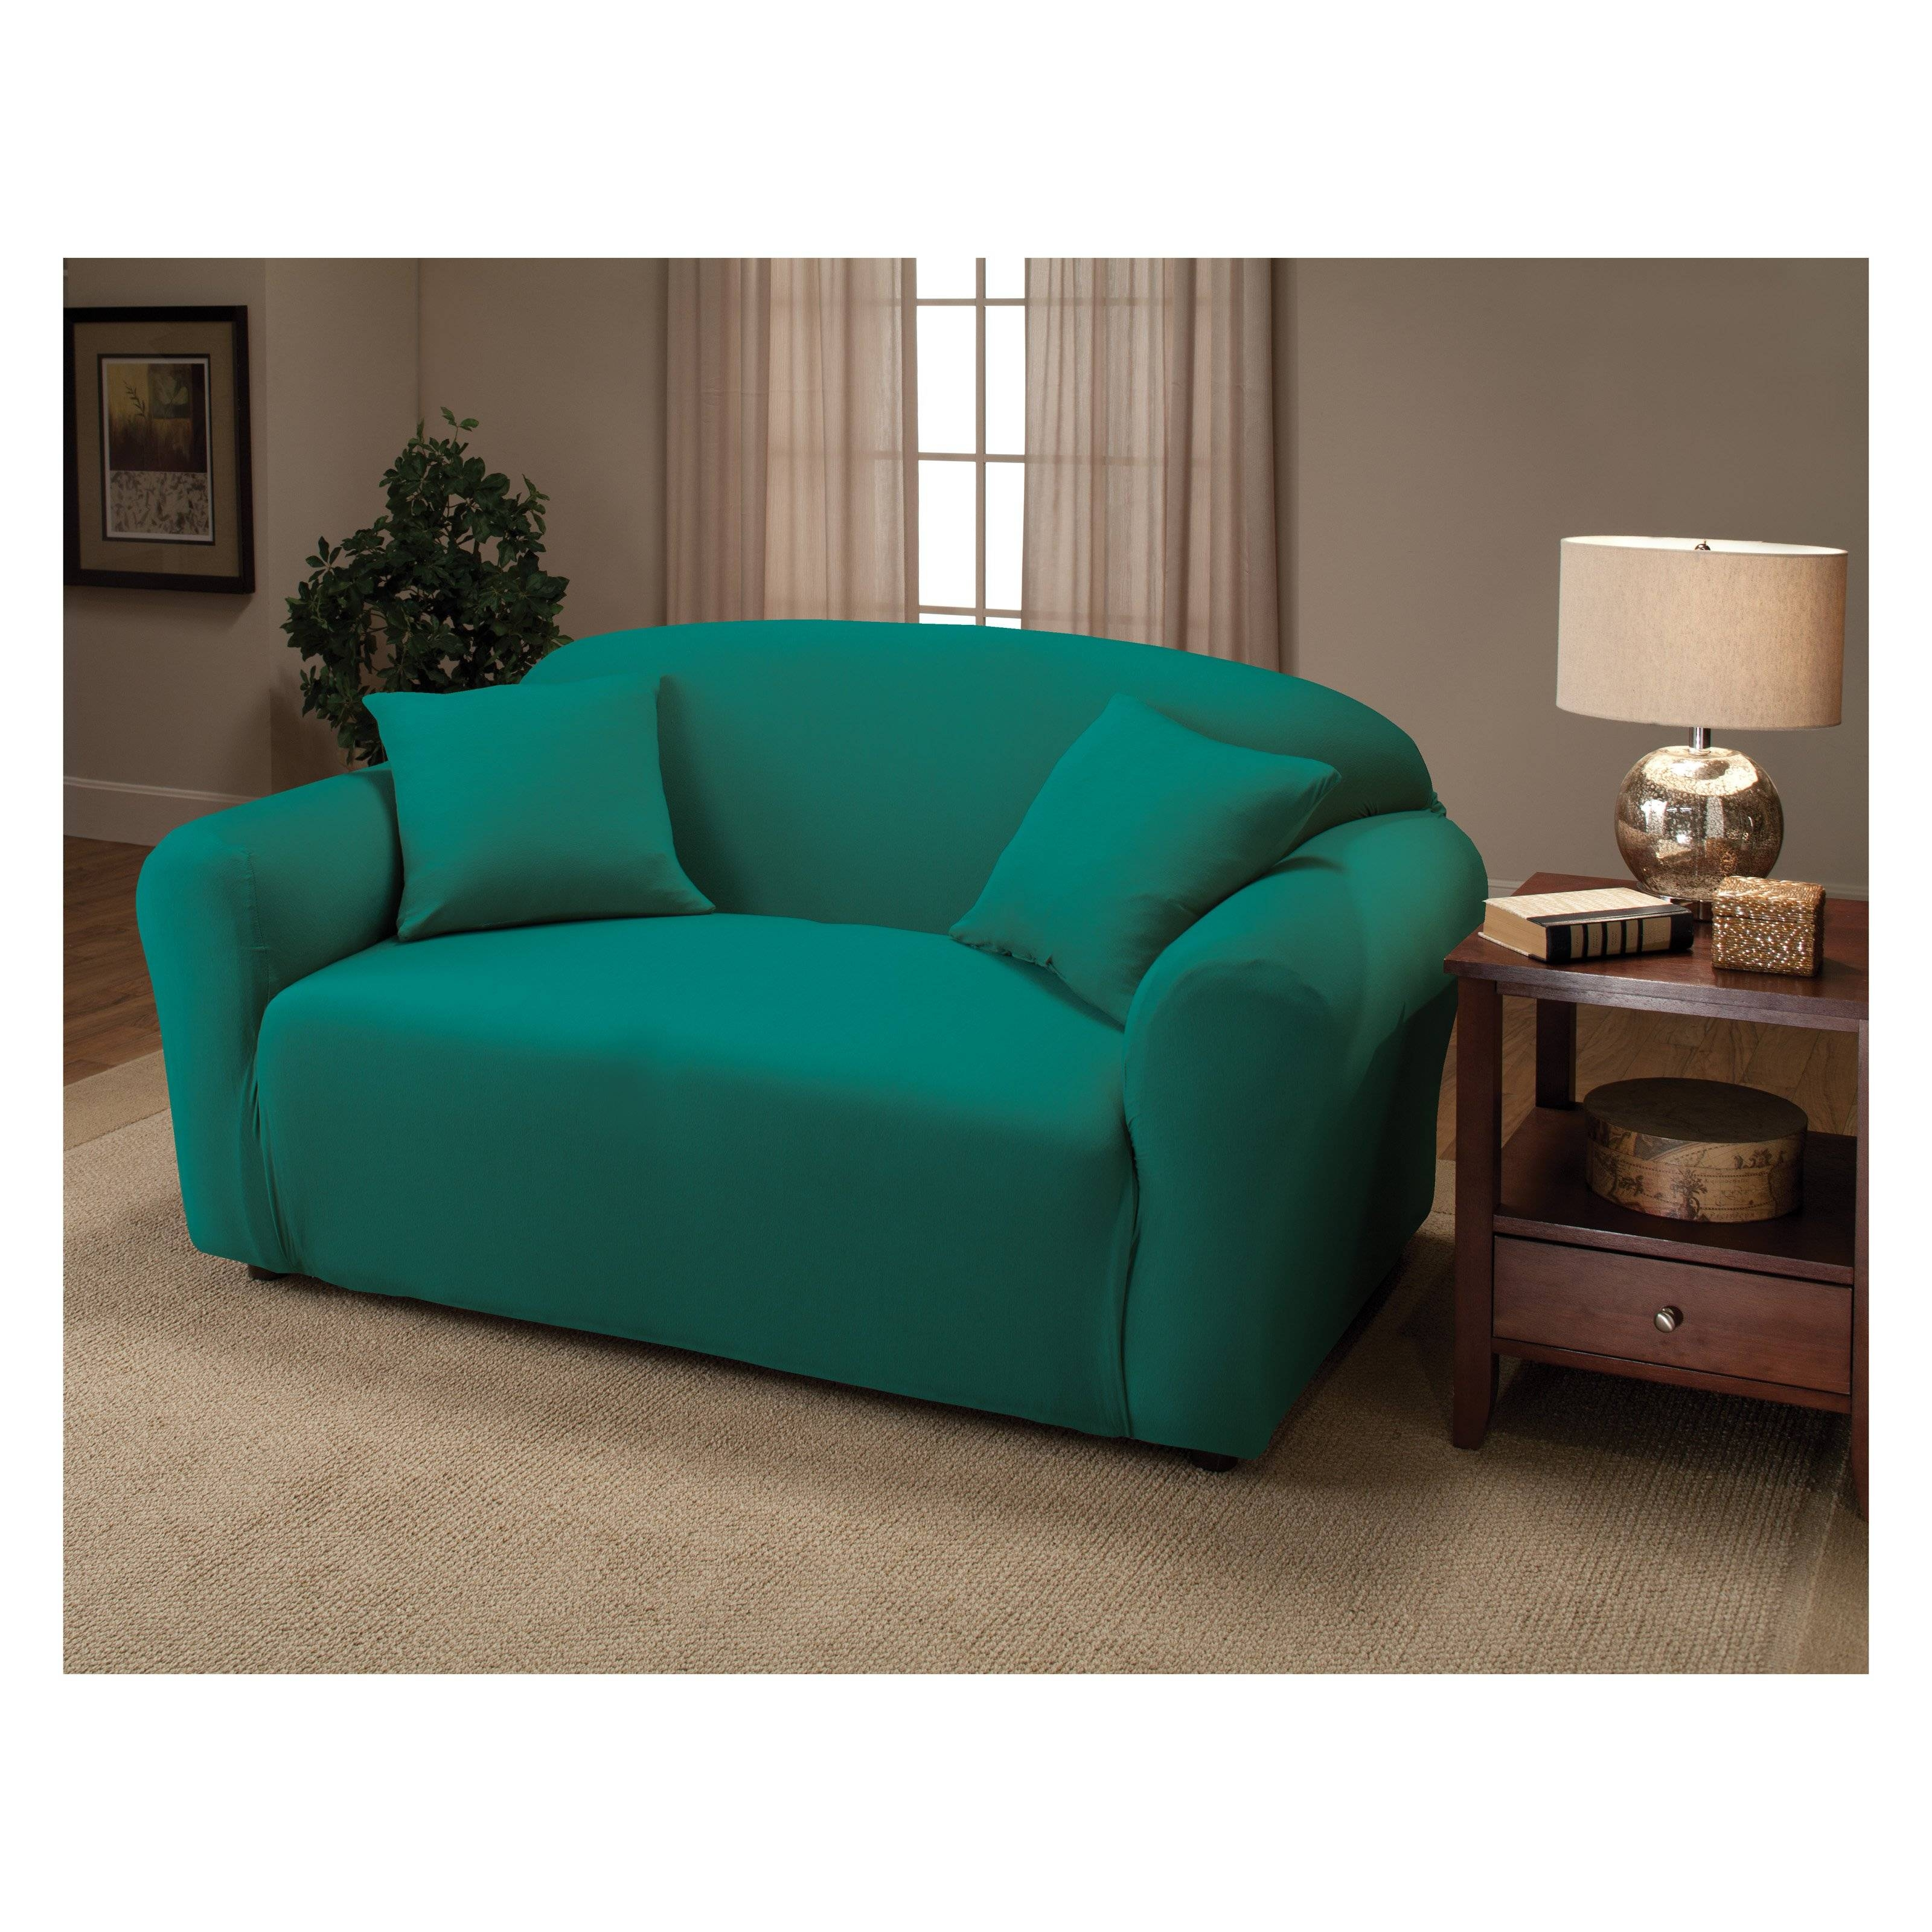 Furniture: Give Your Furniture Makeover With Sofa Recliner Covers with regard to Turquoise Sofa Covers (Image 10 of 30)